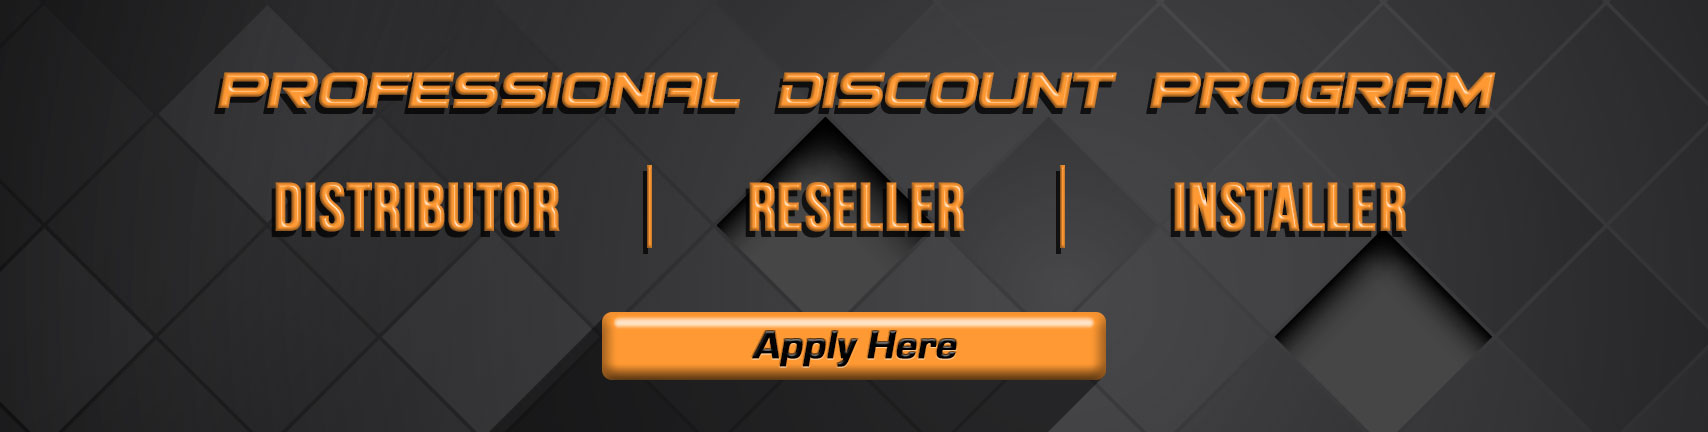 Are you a reseller looking for professional discounts?